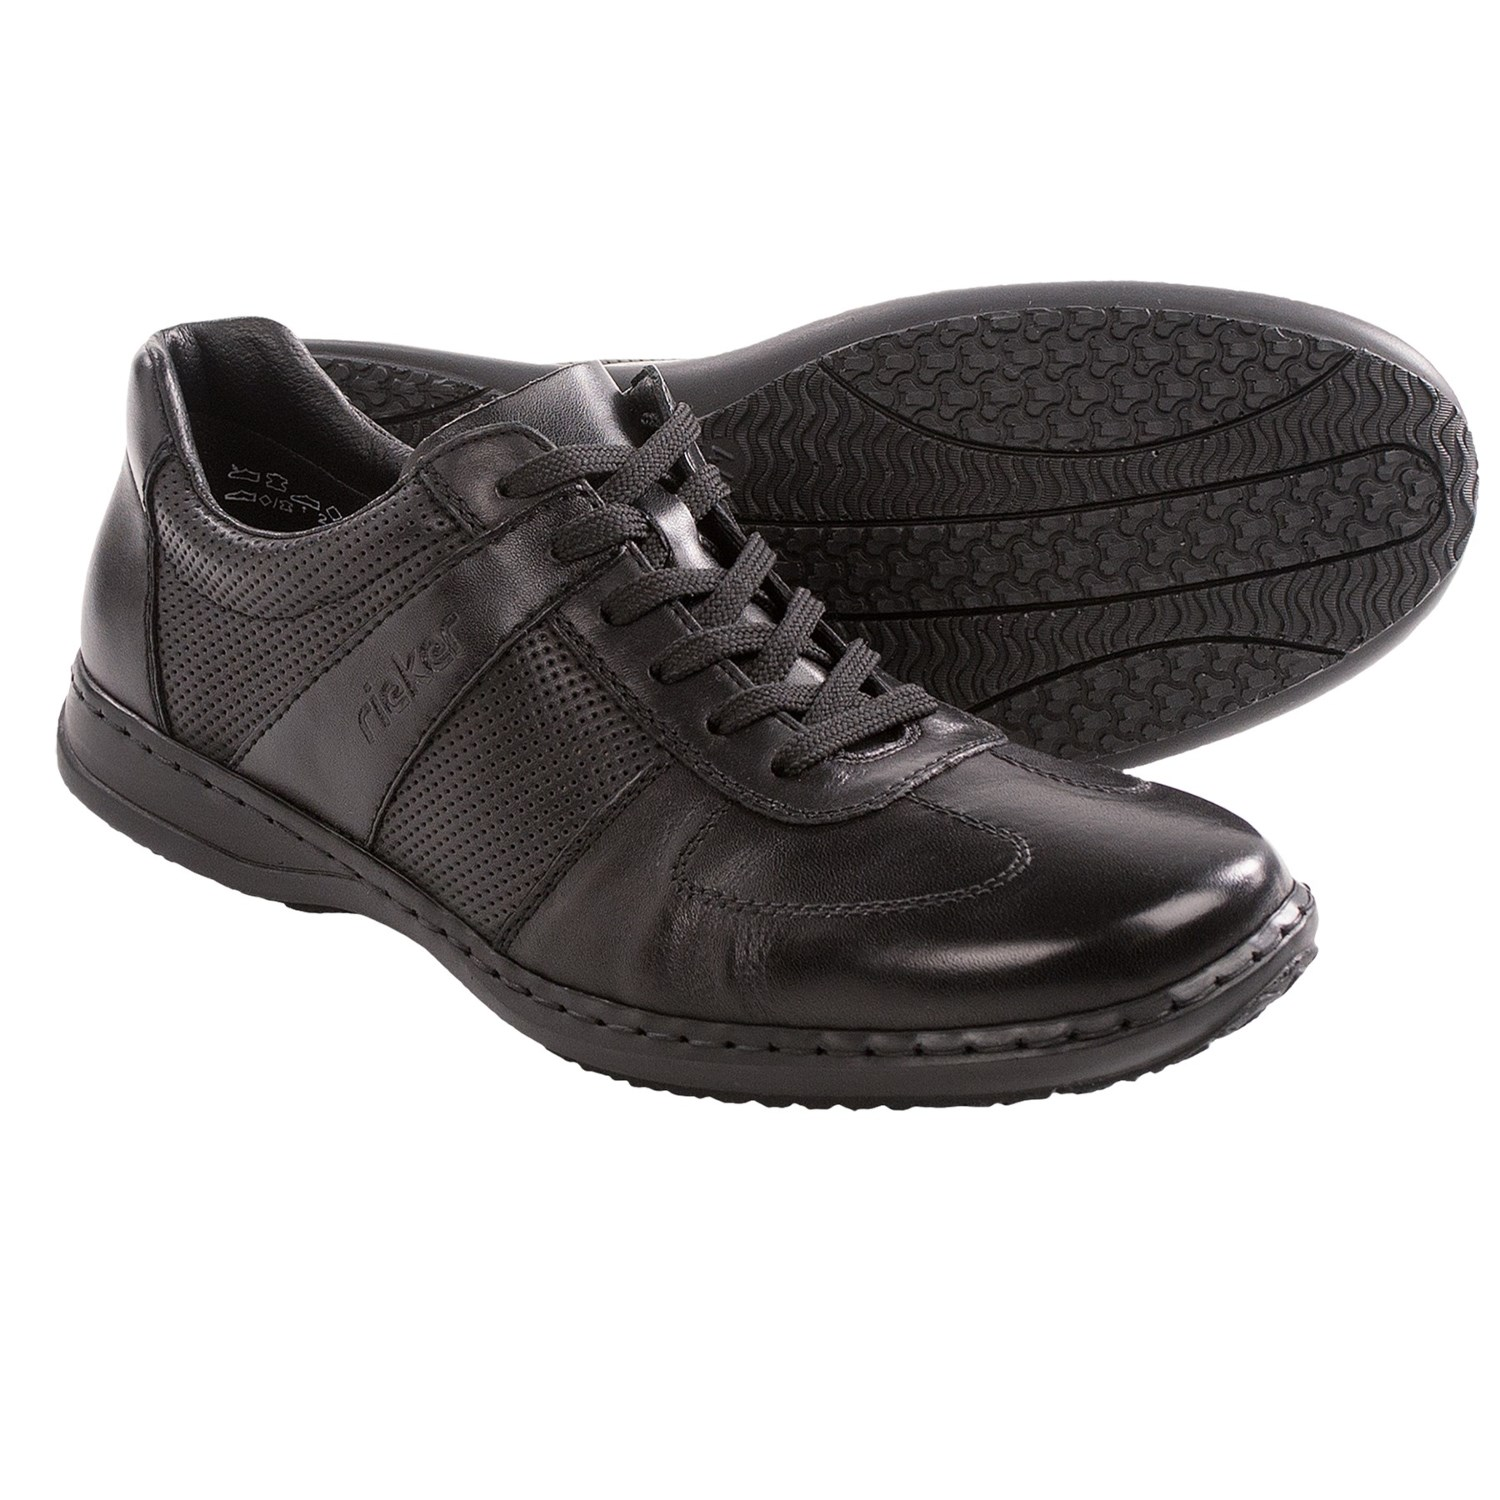 henning men Waterproof henning workday by hush puppies at 6pm read hush puppies waterproof henning workday product reviews, or select the size, width, and color of your choice.